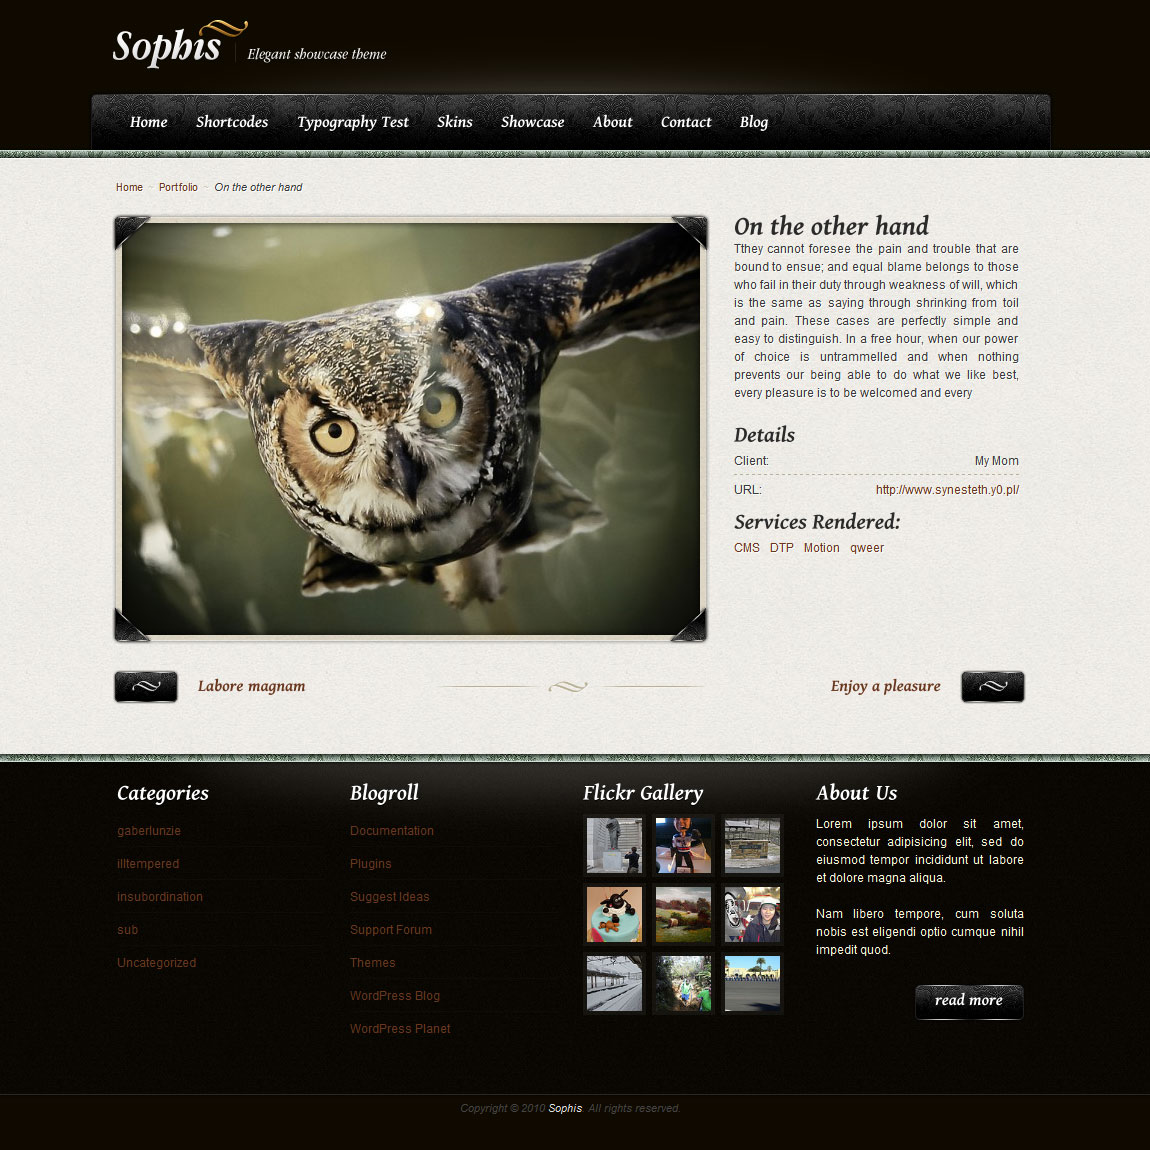 Sophis - elegant theme  - Single showcase/portfolio item details